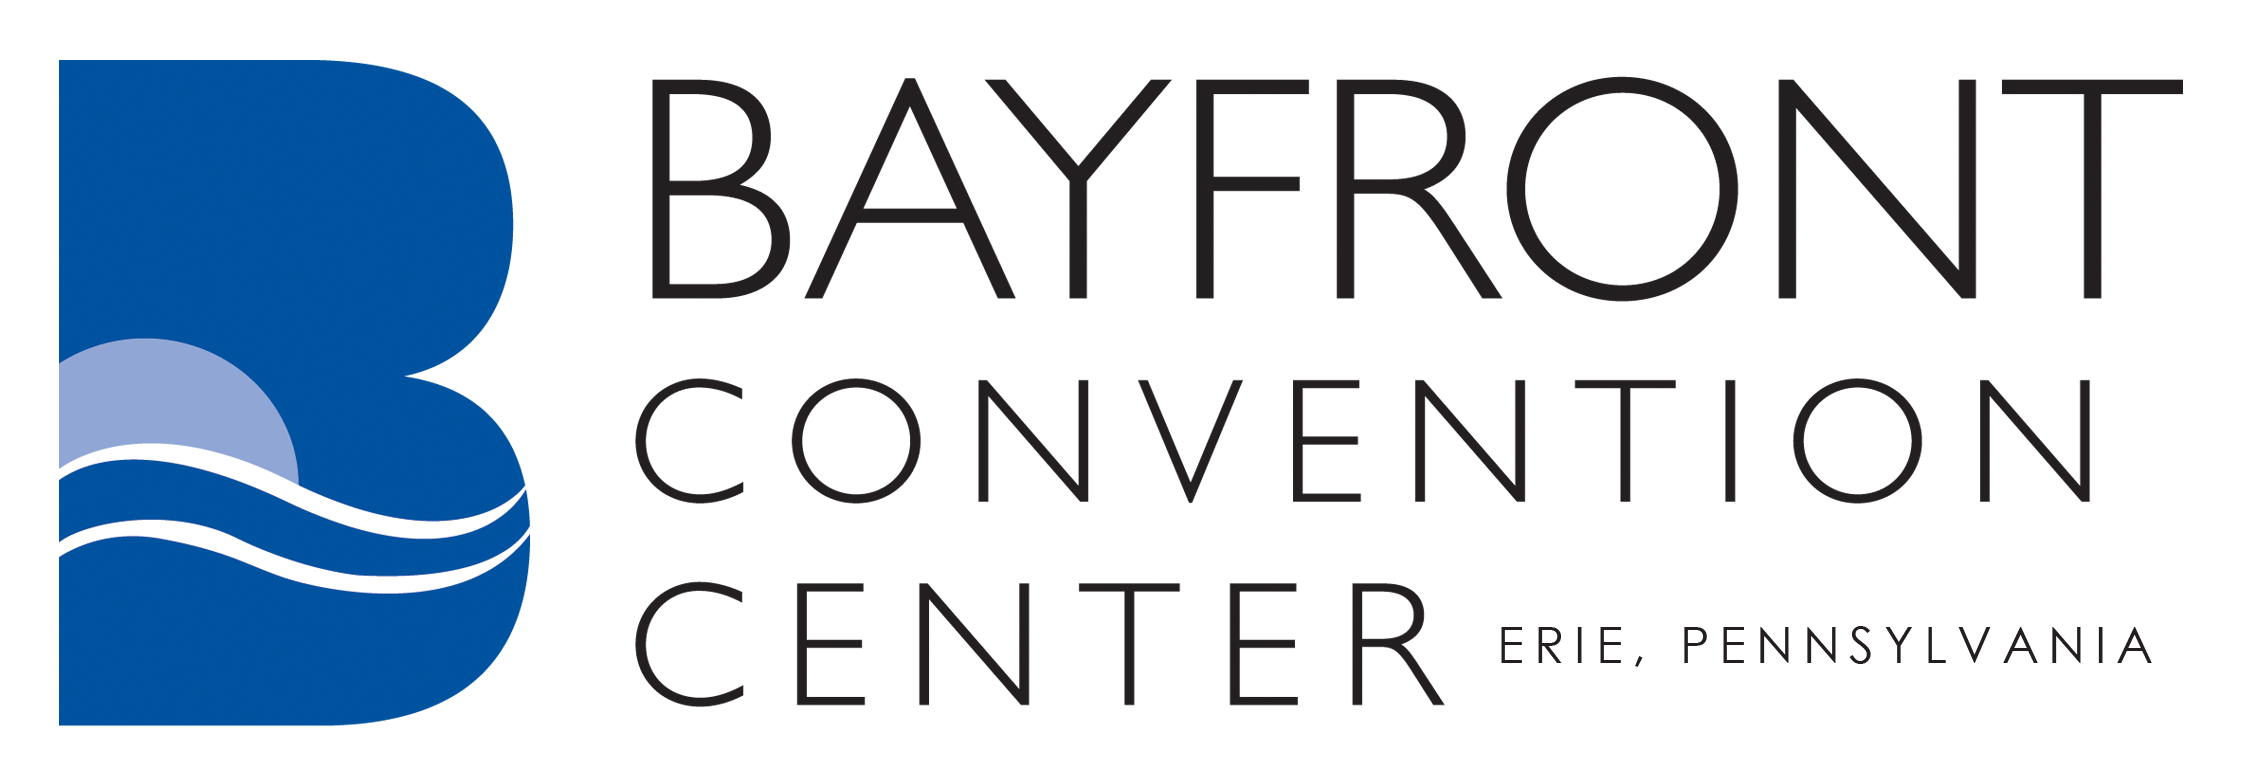 Stay Here - Bayfront Convention Center | Erie Pennsylvania